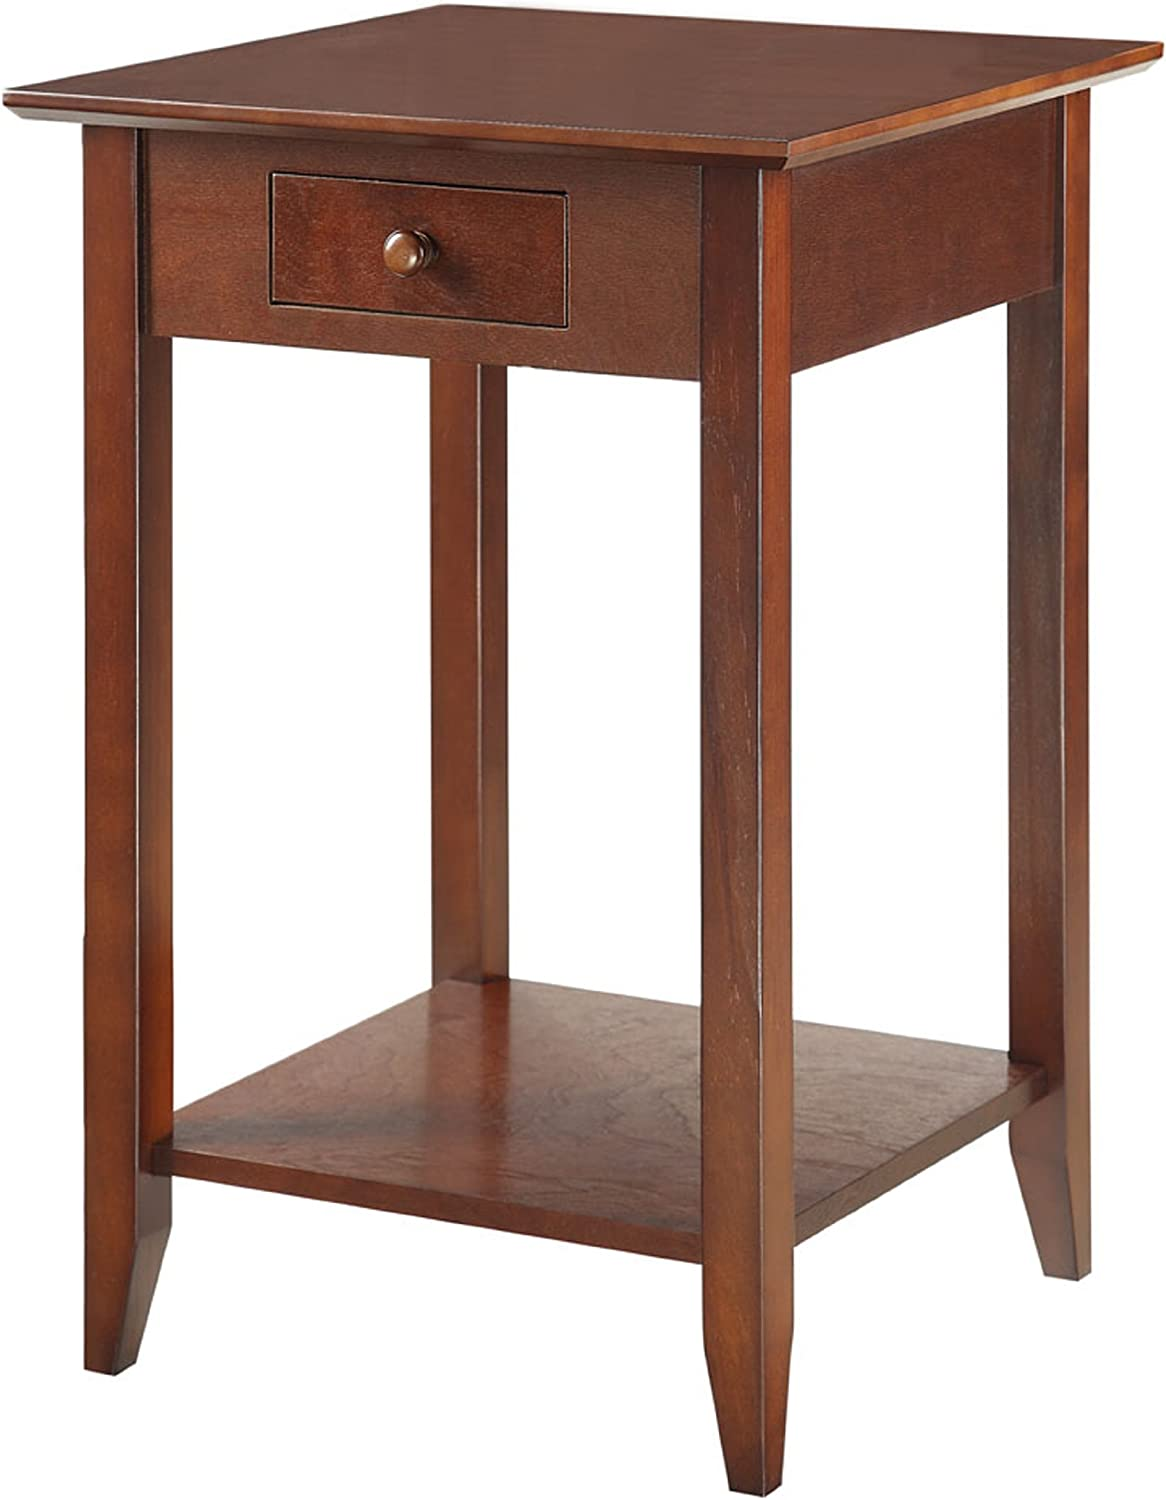 Convenience Concepts American Heritage End Table with Shelf and Drawer, Espresso